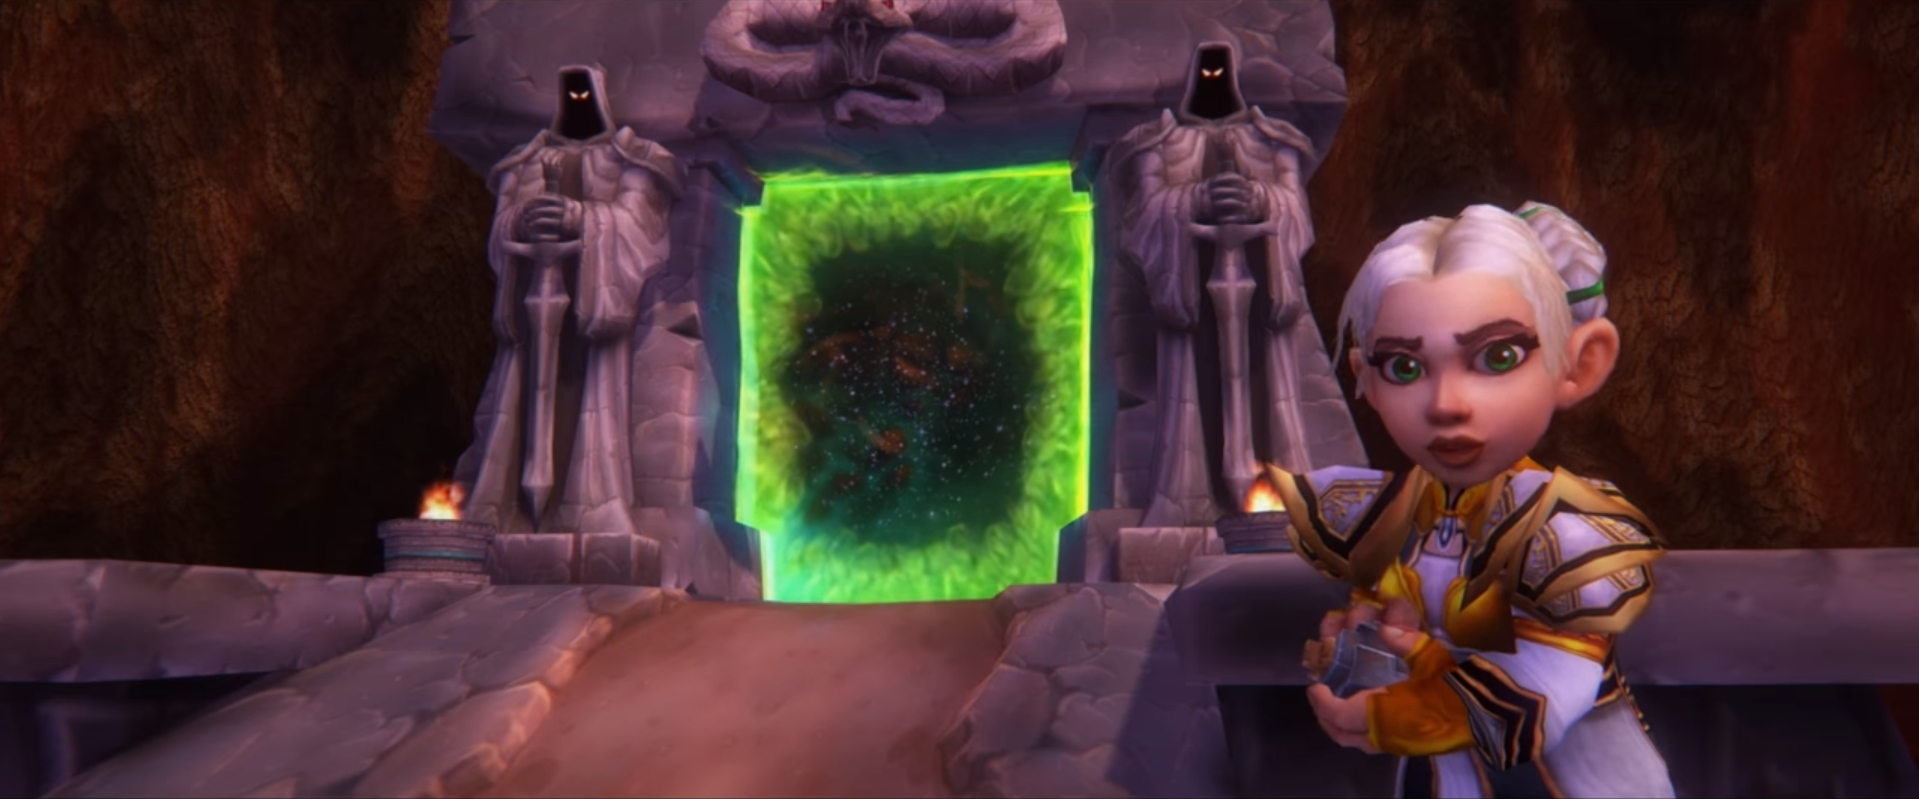 Blizzard Discusses Nature Resistance Gear In World Of Warcraft: Classic, Discussing A Future Release